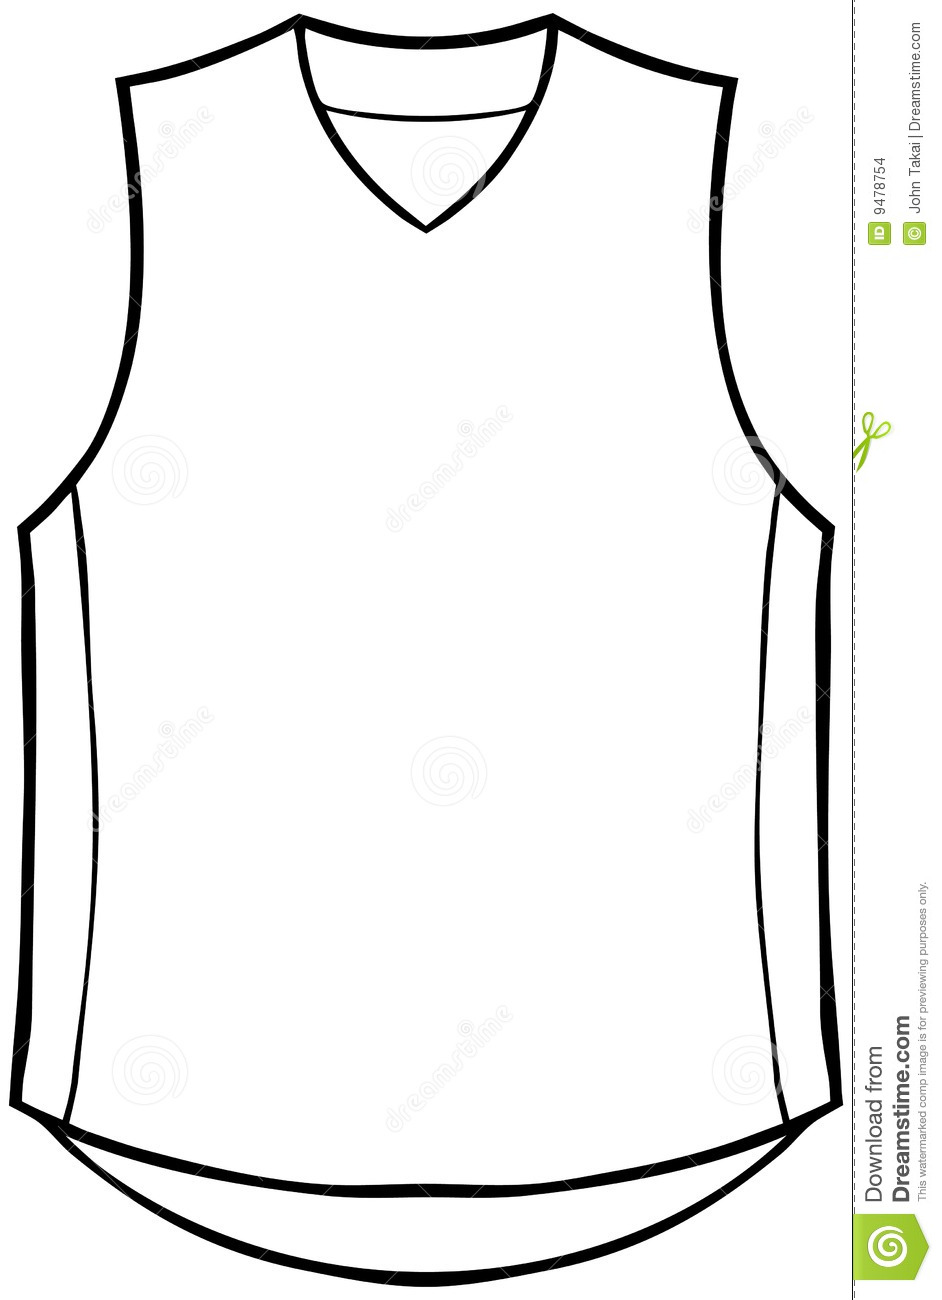 Jersey Clipart Shirt Sleeveless 9478754 Jpg